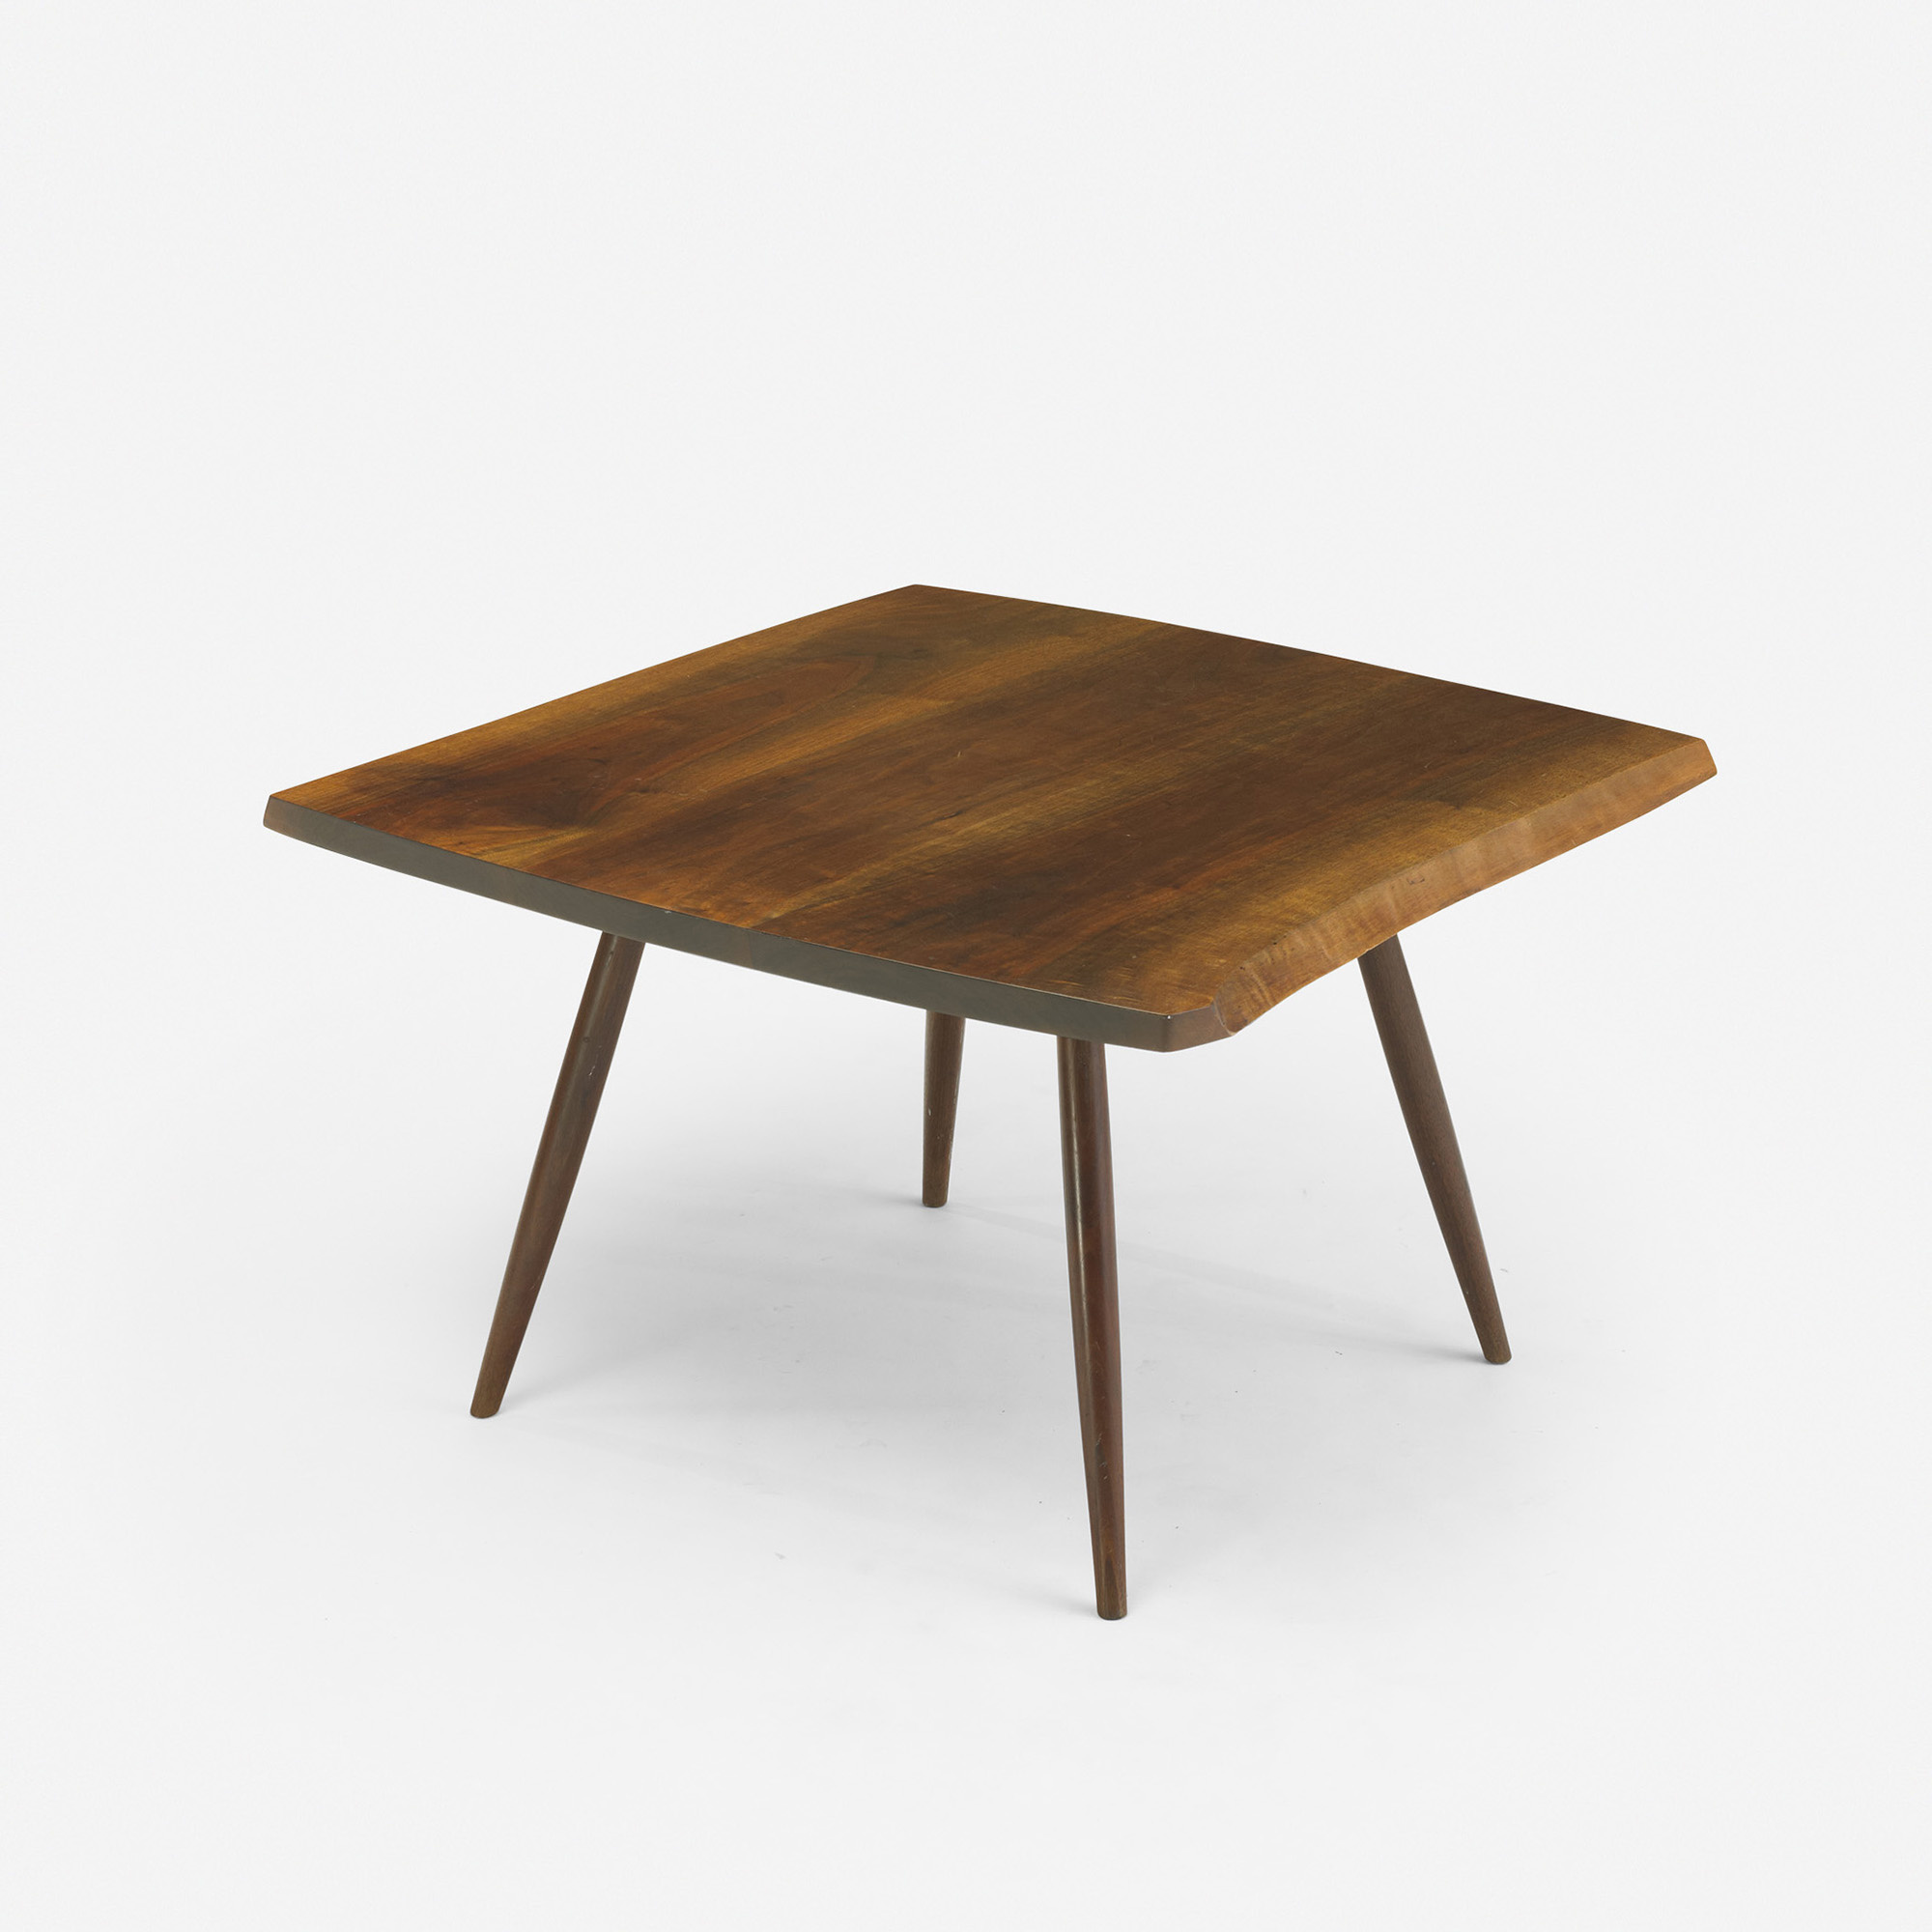 165 GEORGE NAKASHIMA coffee table Modern Design 18 October